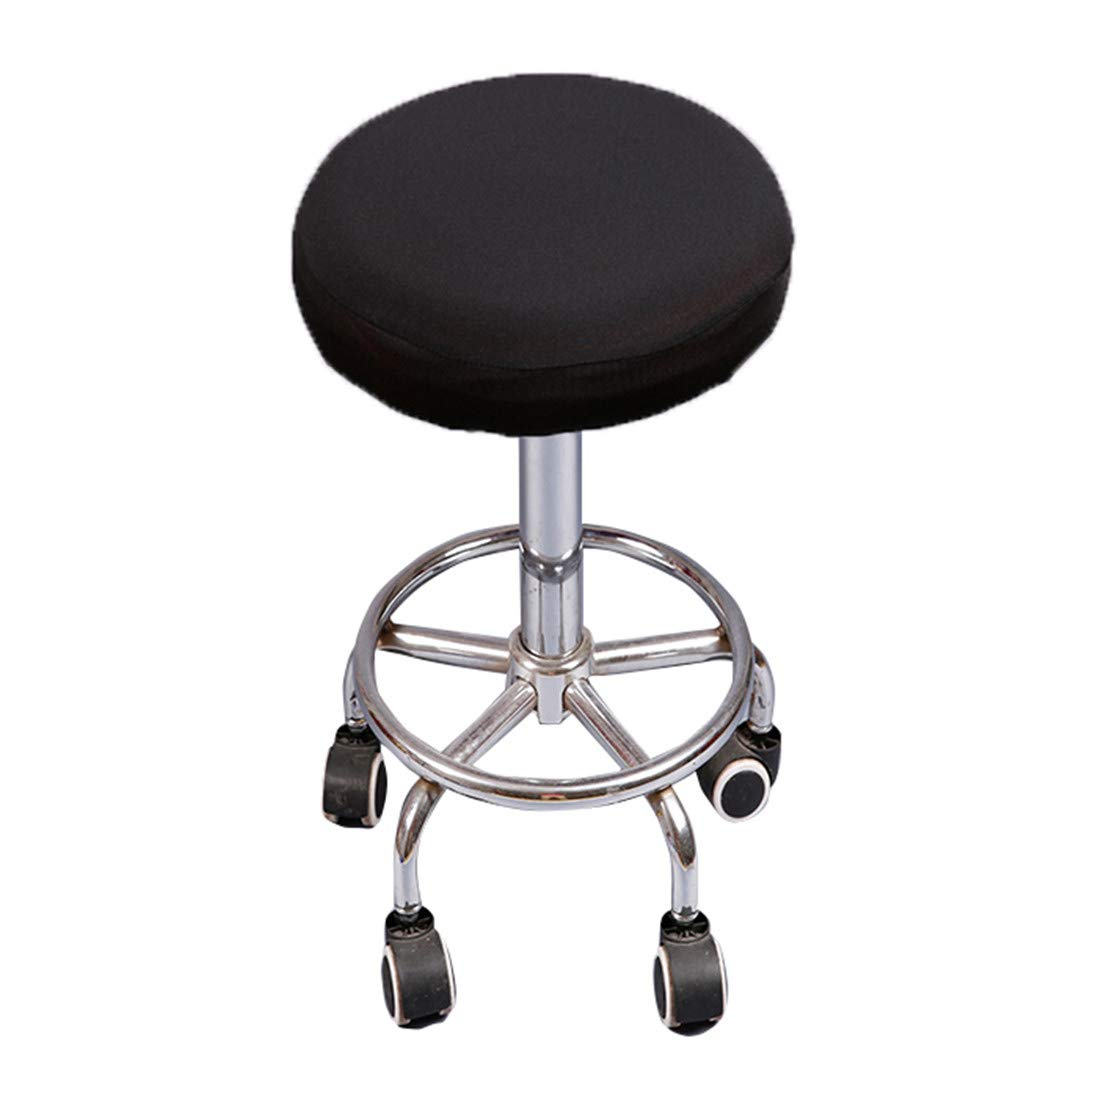 Deisy Dee Soft Stretchable Round Bar Stool Chair Covers Protectors Pack of 2 C097 (black)